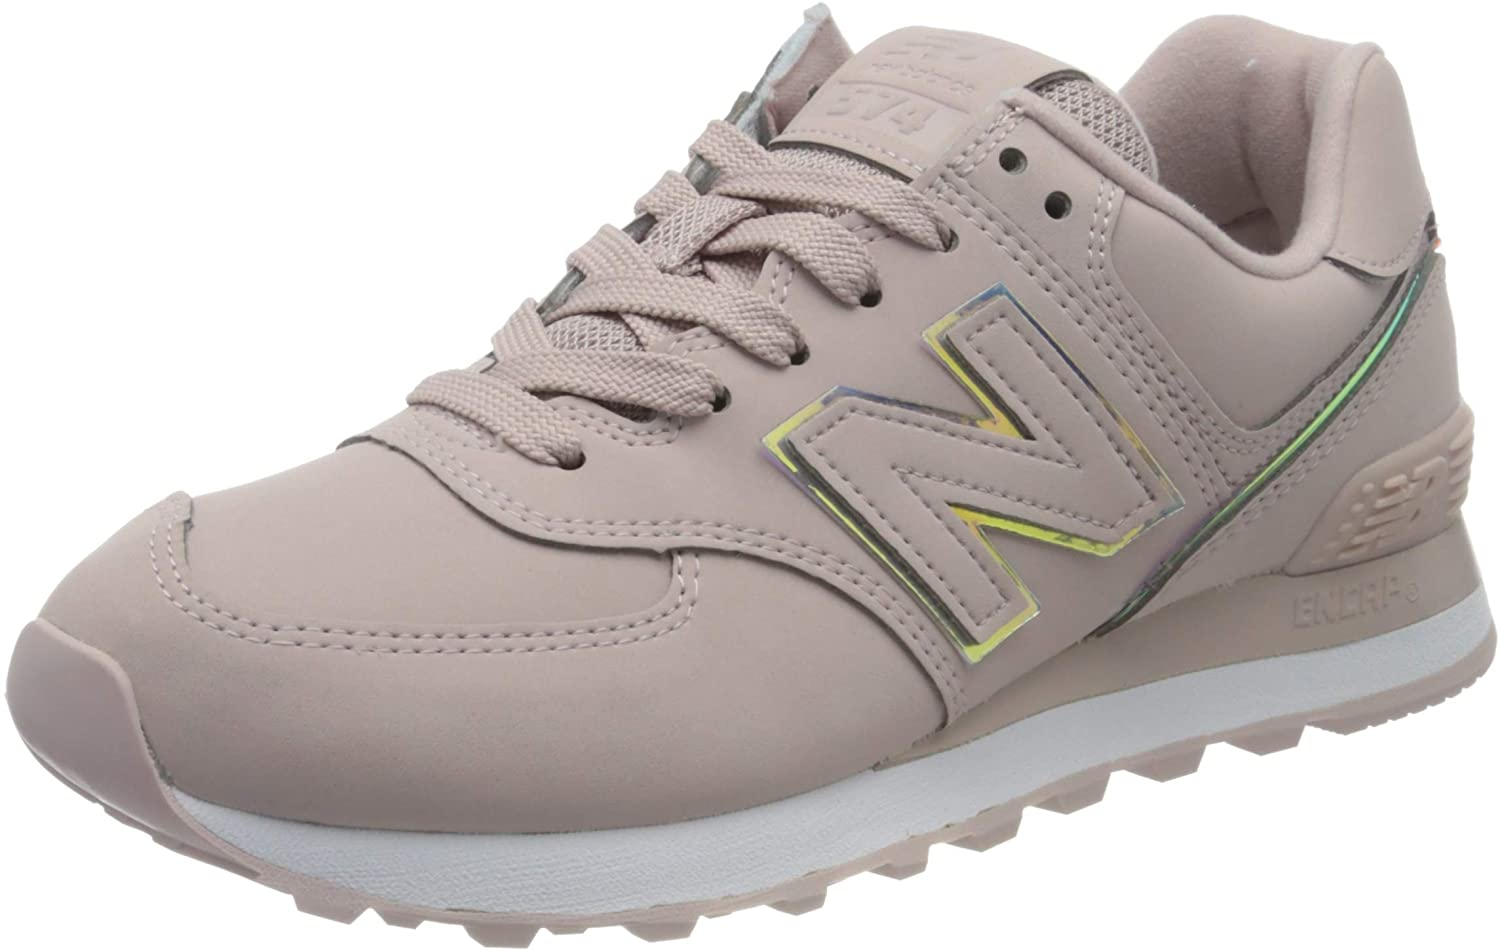 New Balance 574 WL574CLH Medium, athletic shoes, Pink (Space Pink ...